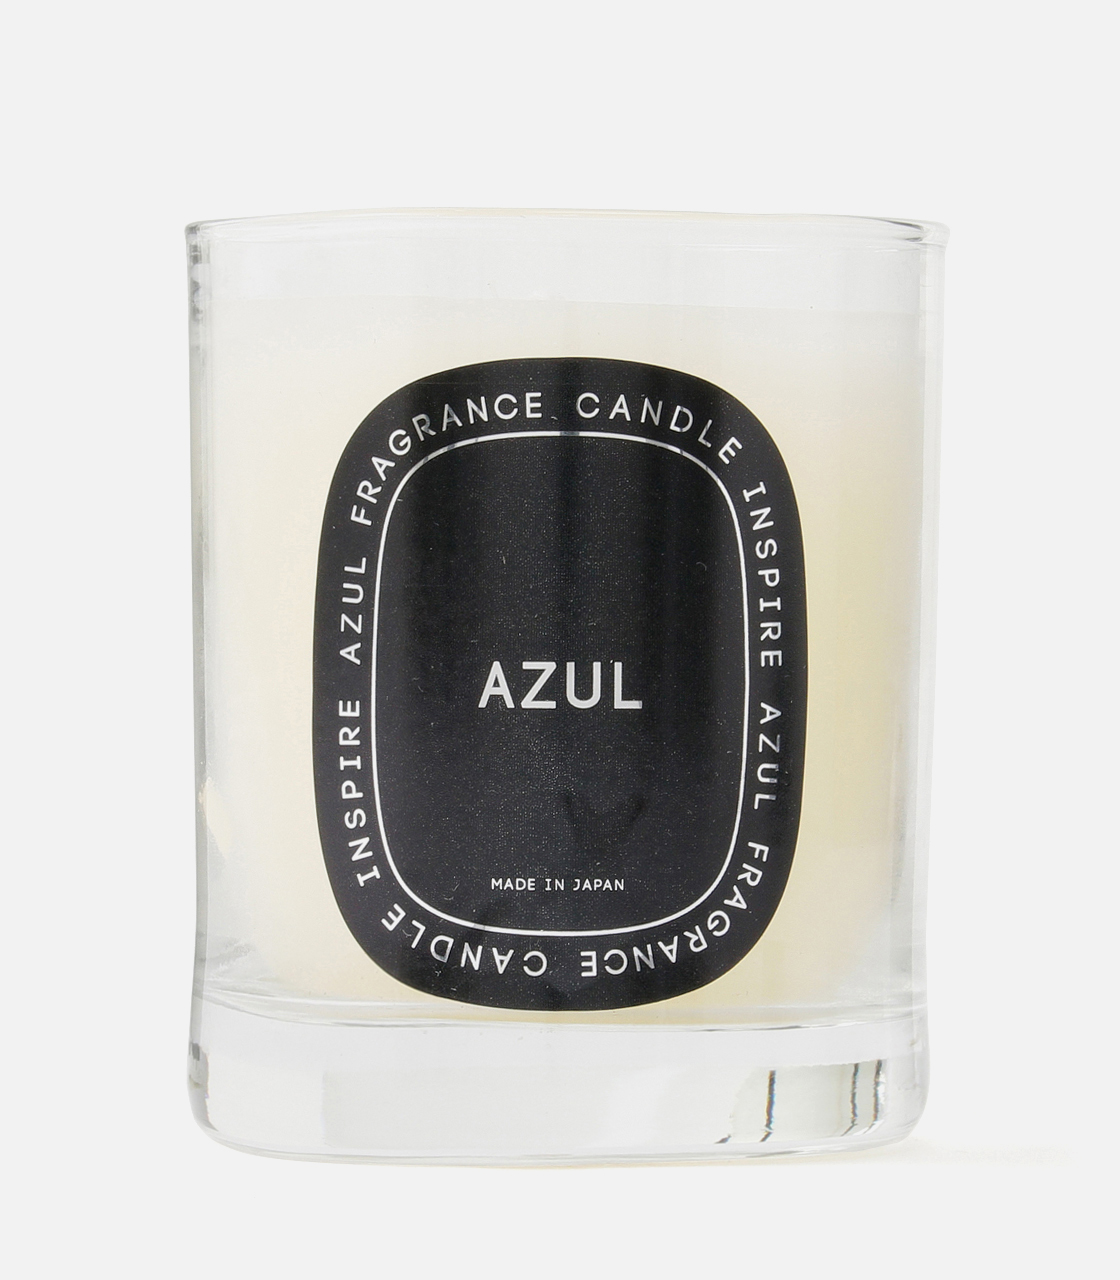 AZUL CANDLE/アズールキャンドル 詳細画像 BLK 1